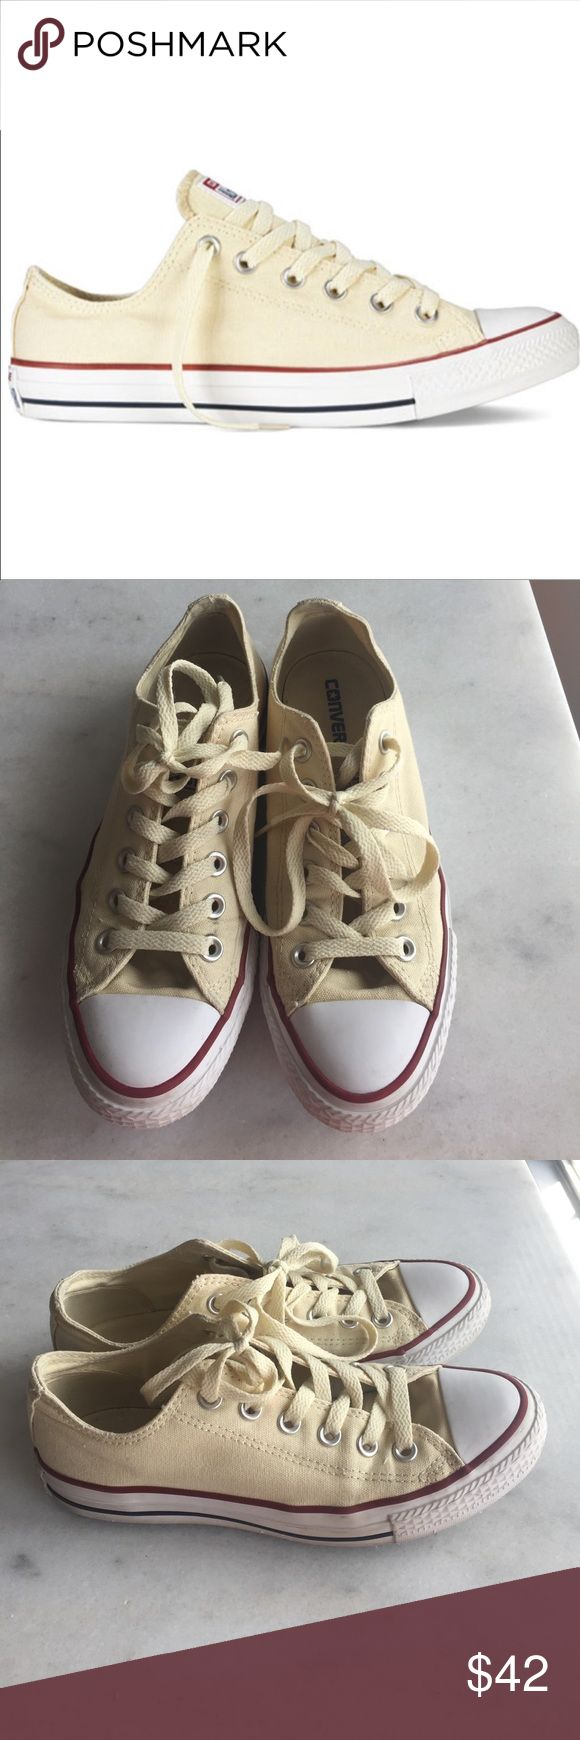 Converse Shoes Cream Converse (inner tag says M5/W7) Converse Shoes Sneakers